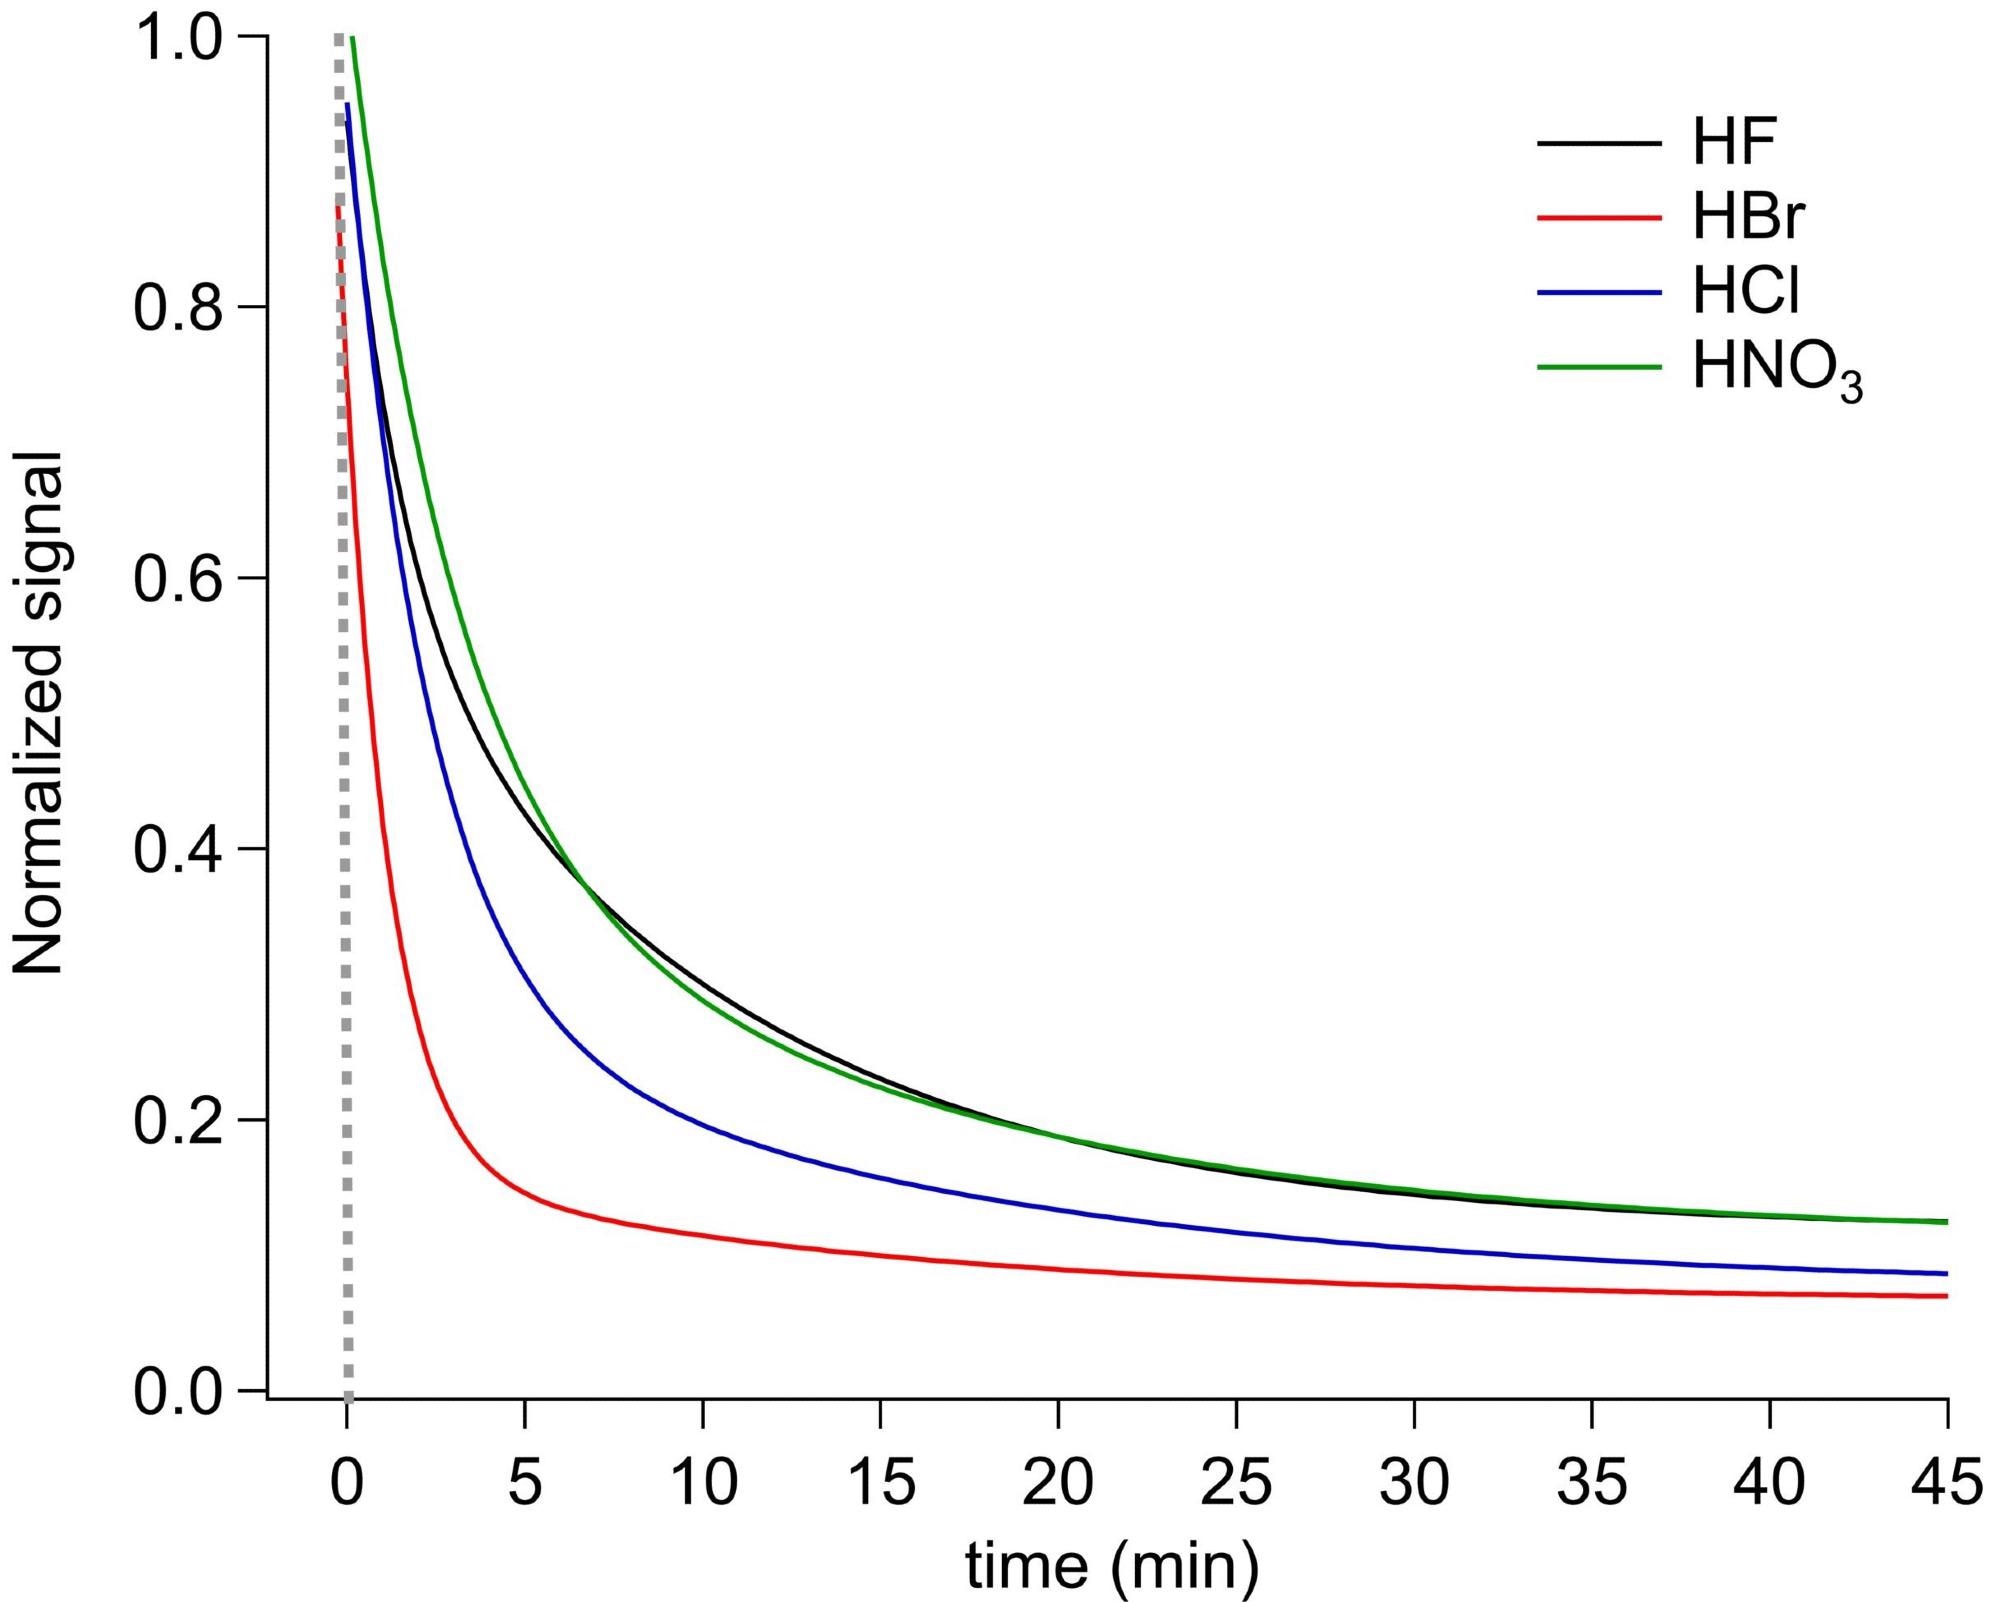 Exponential decay of different inorganic acids during the first 45 minutes of FOUP flushing. The response of the acids to flushing is related to their vapor pressure and surface interactions with the inner FOUP surfaces.